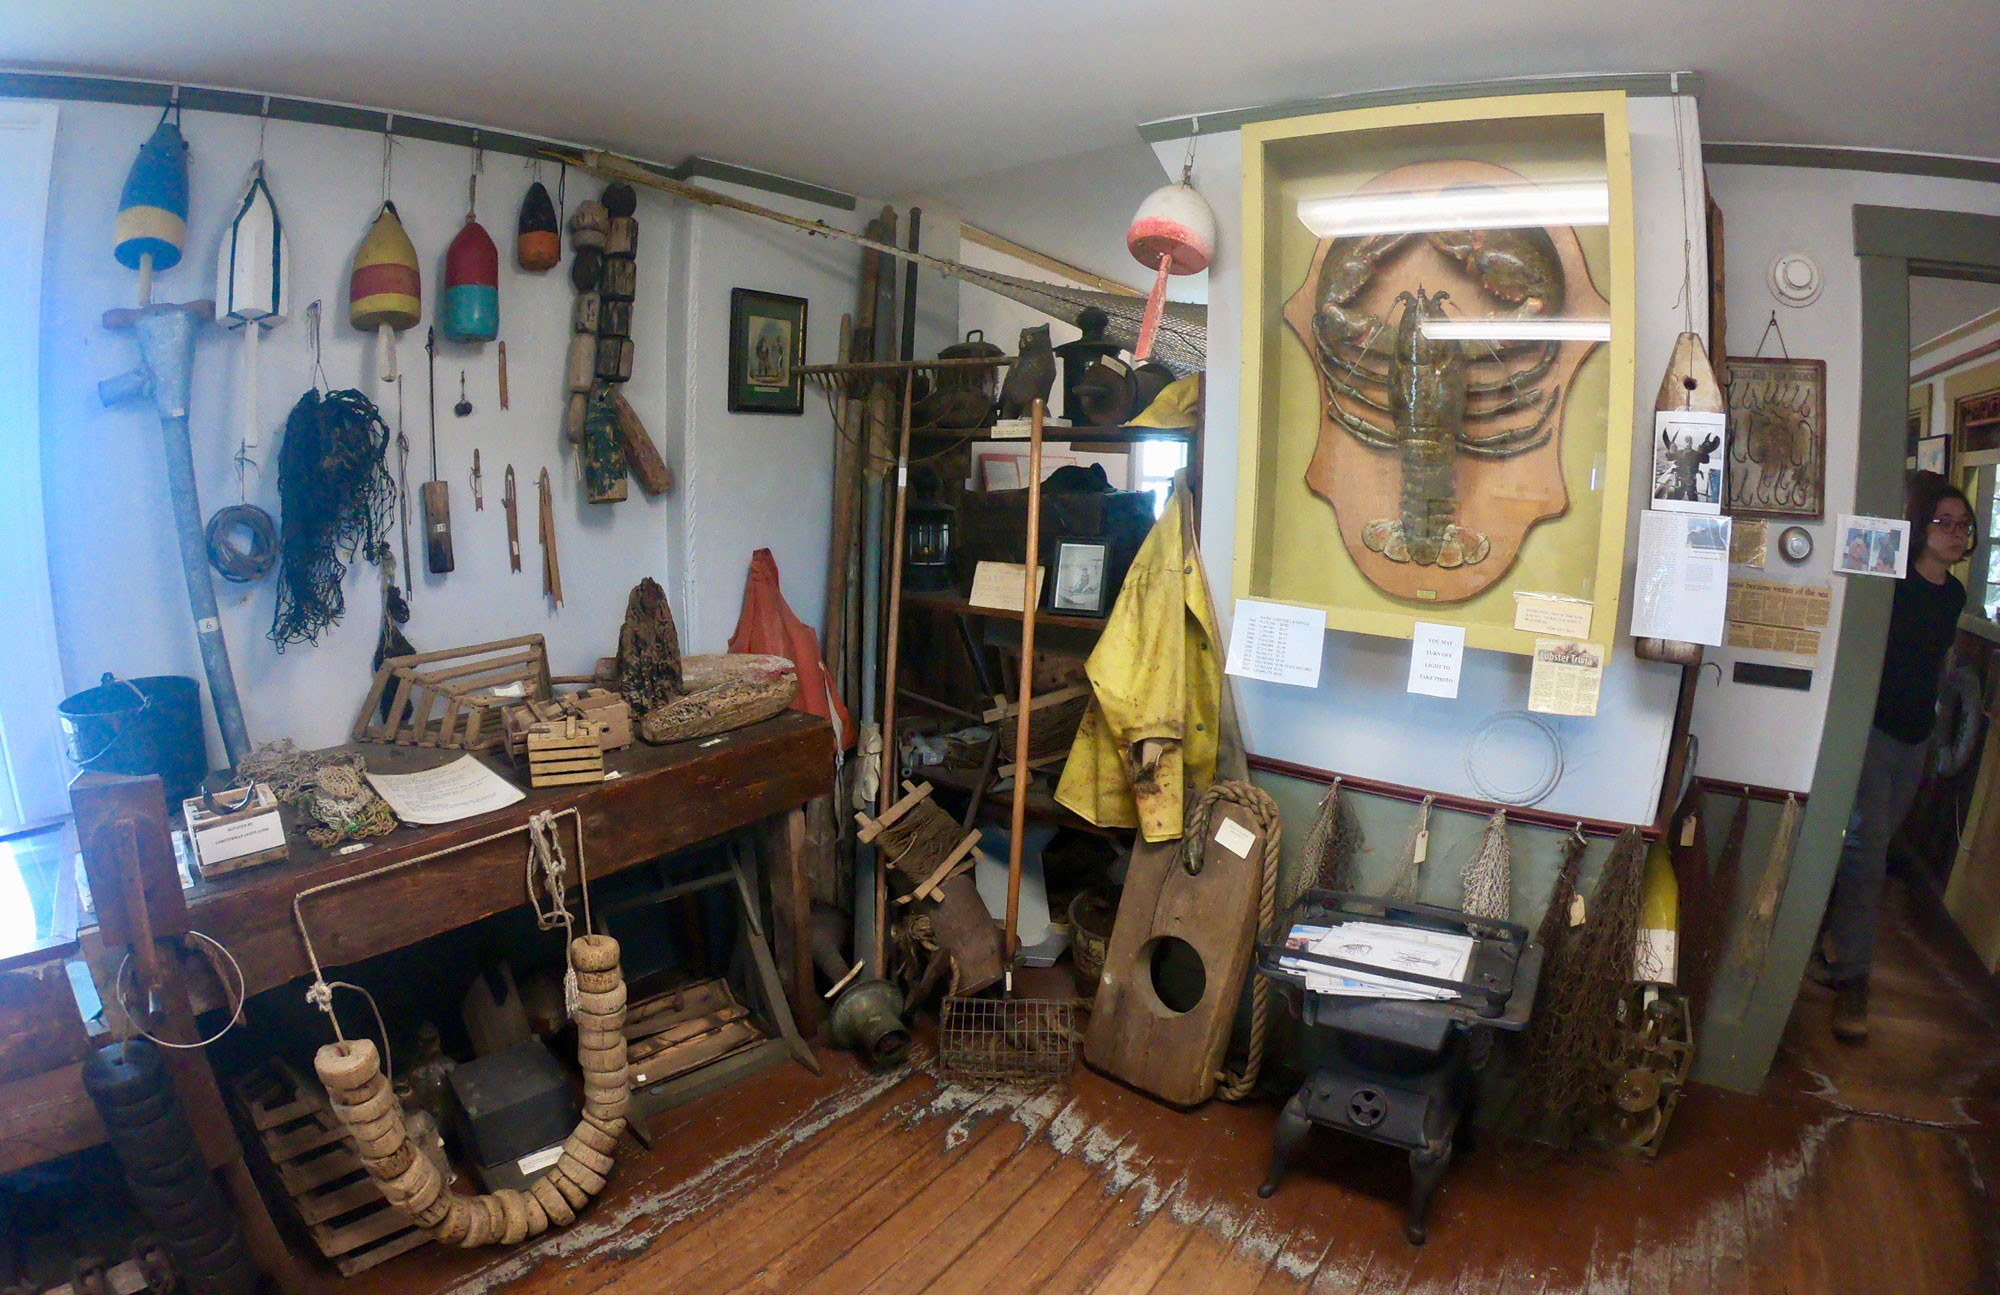 Interior maritime exhibits with lobster and fishing gear in Fishermen's Museum at Pemaquid Point Lighthouse Park, Bristol, Maine